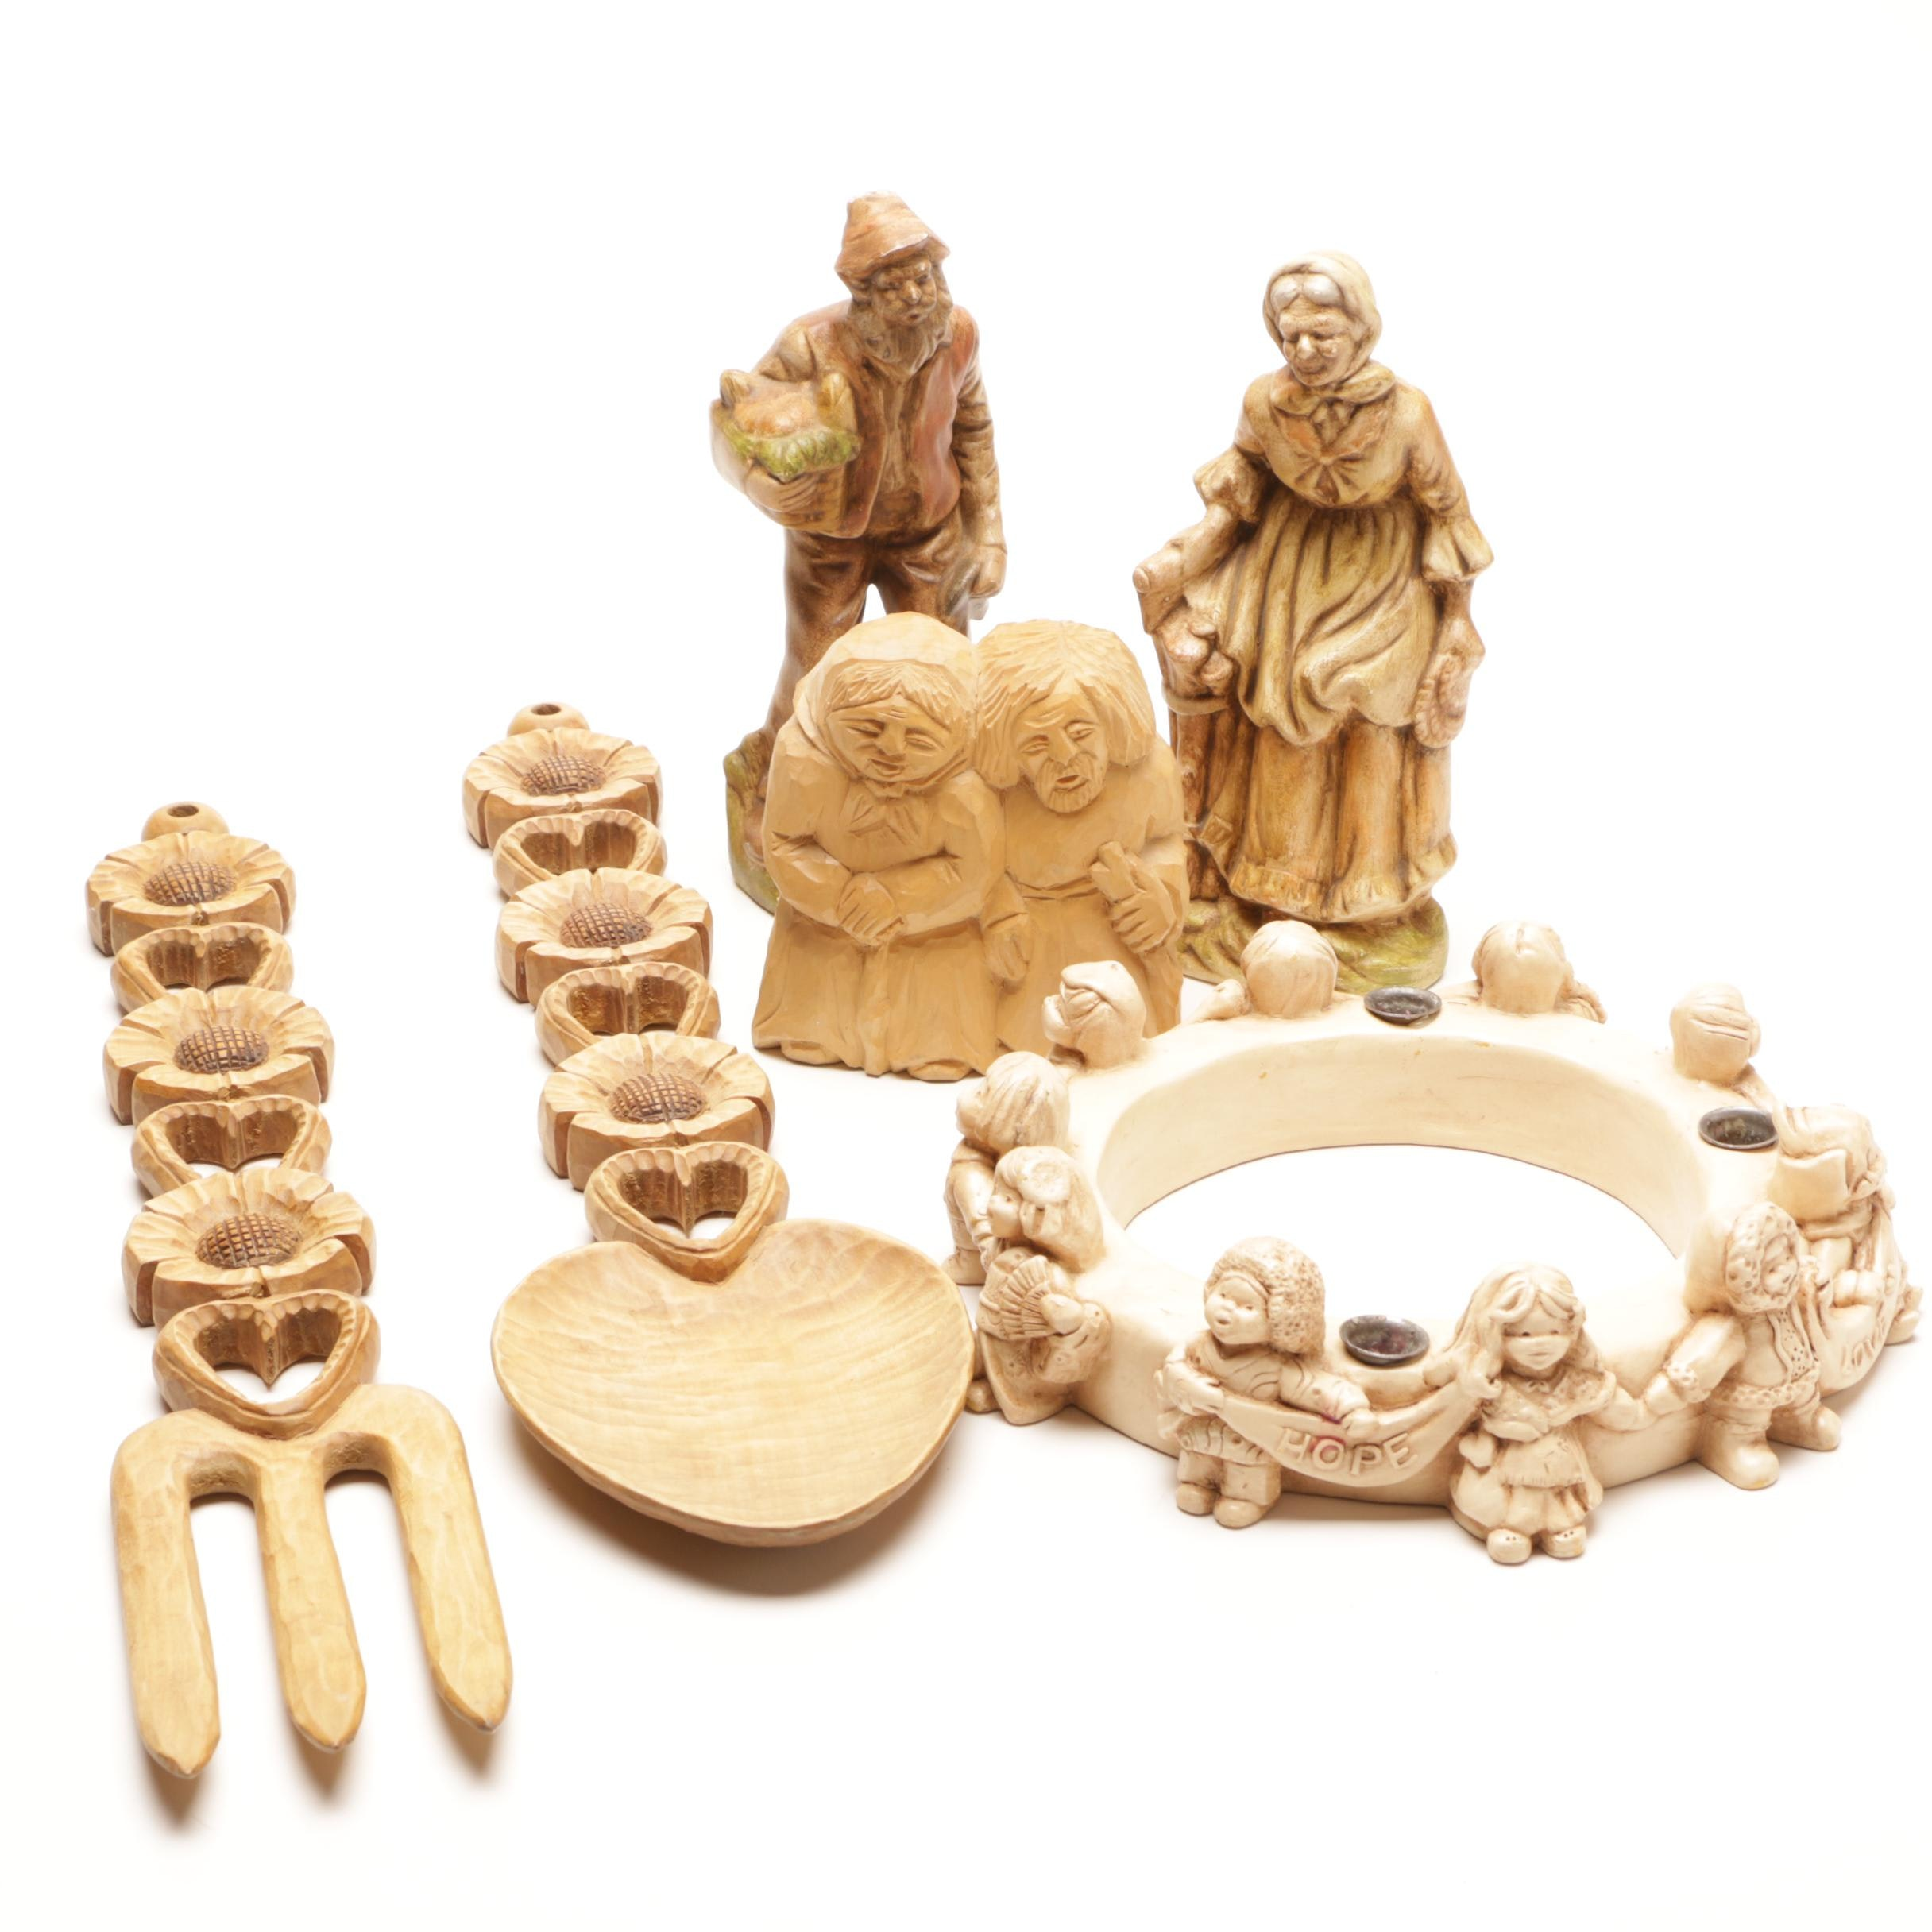 Old World European Figurines and Rustic Decor